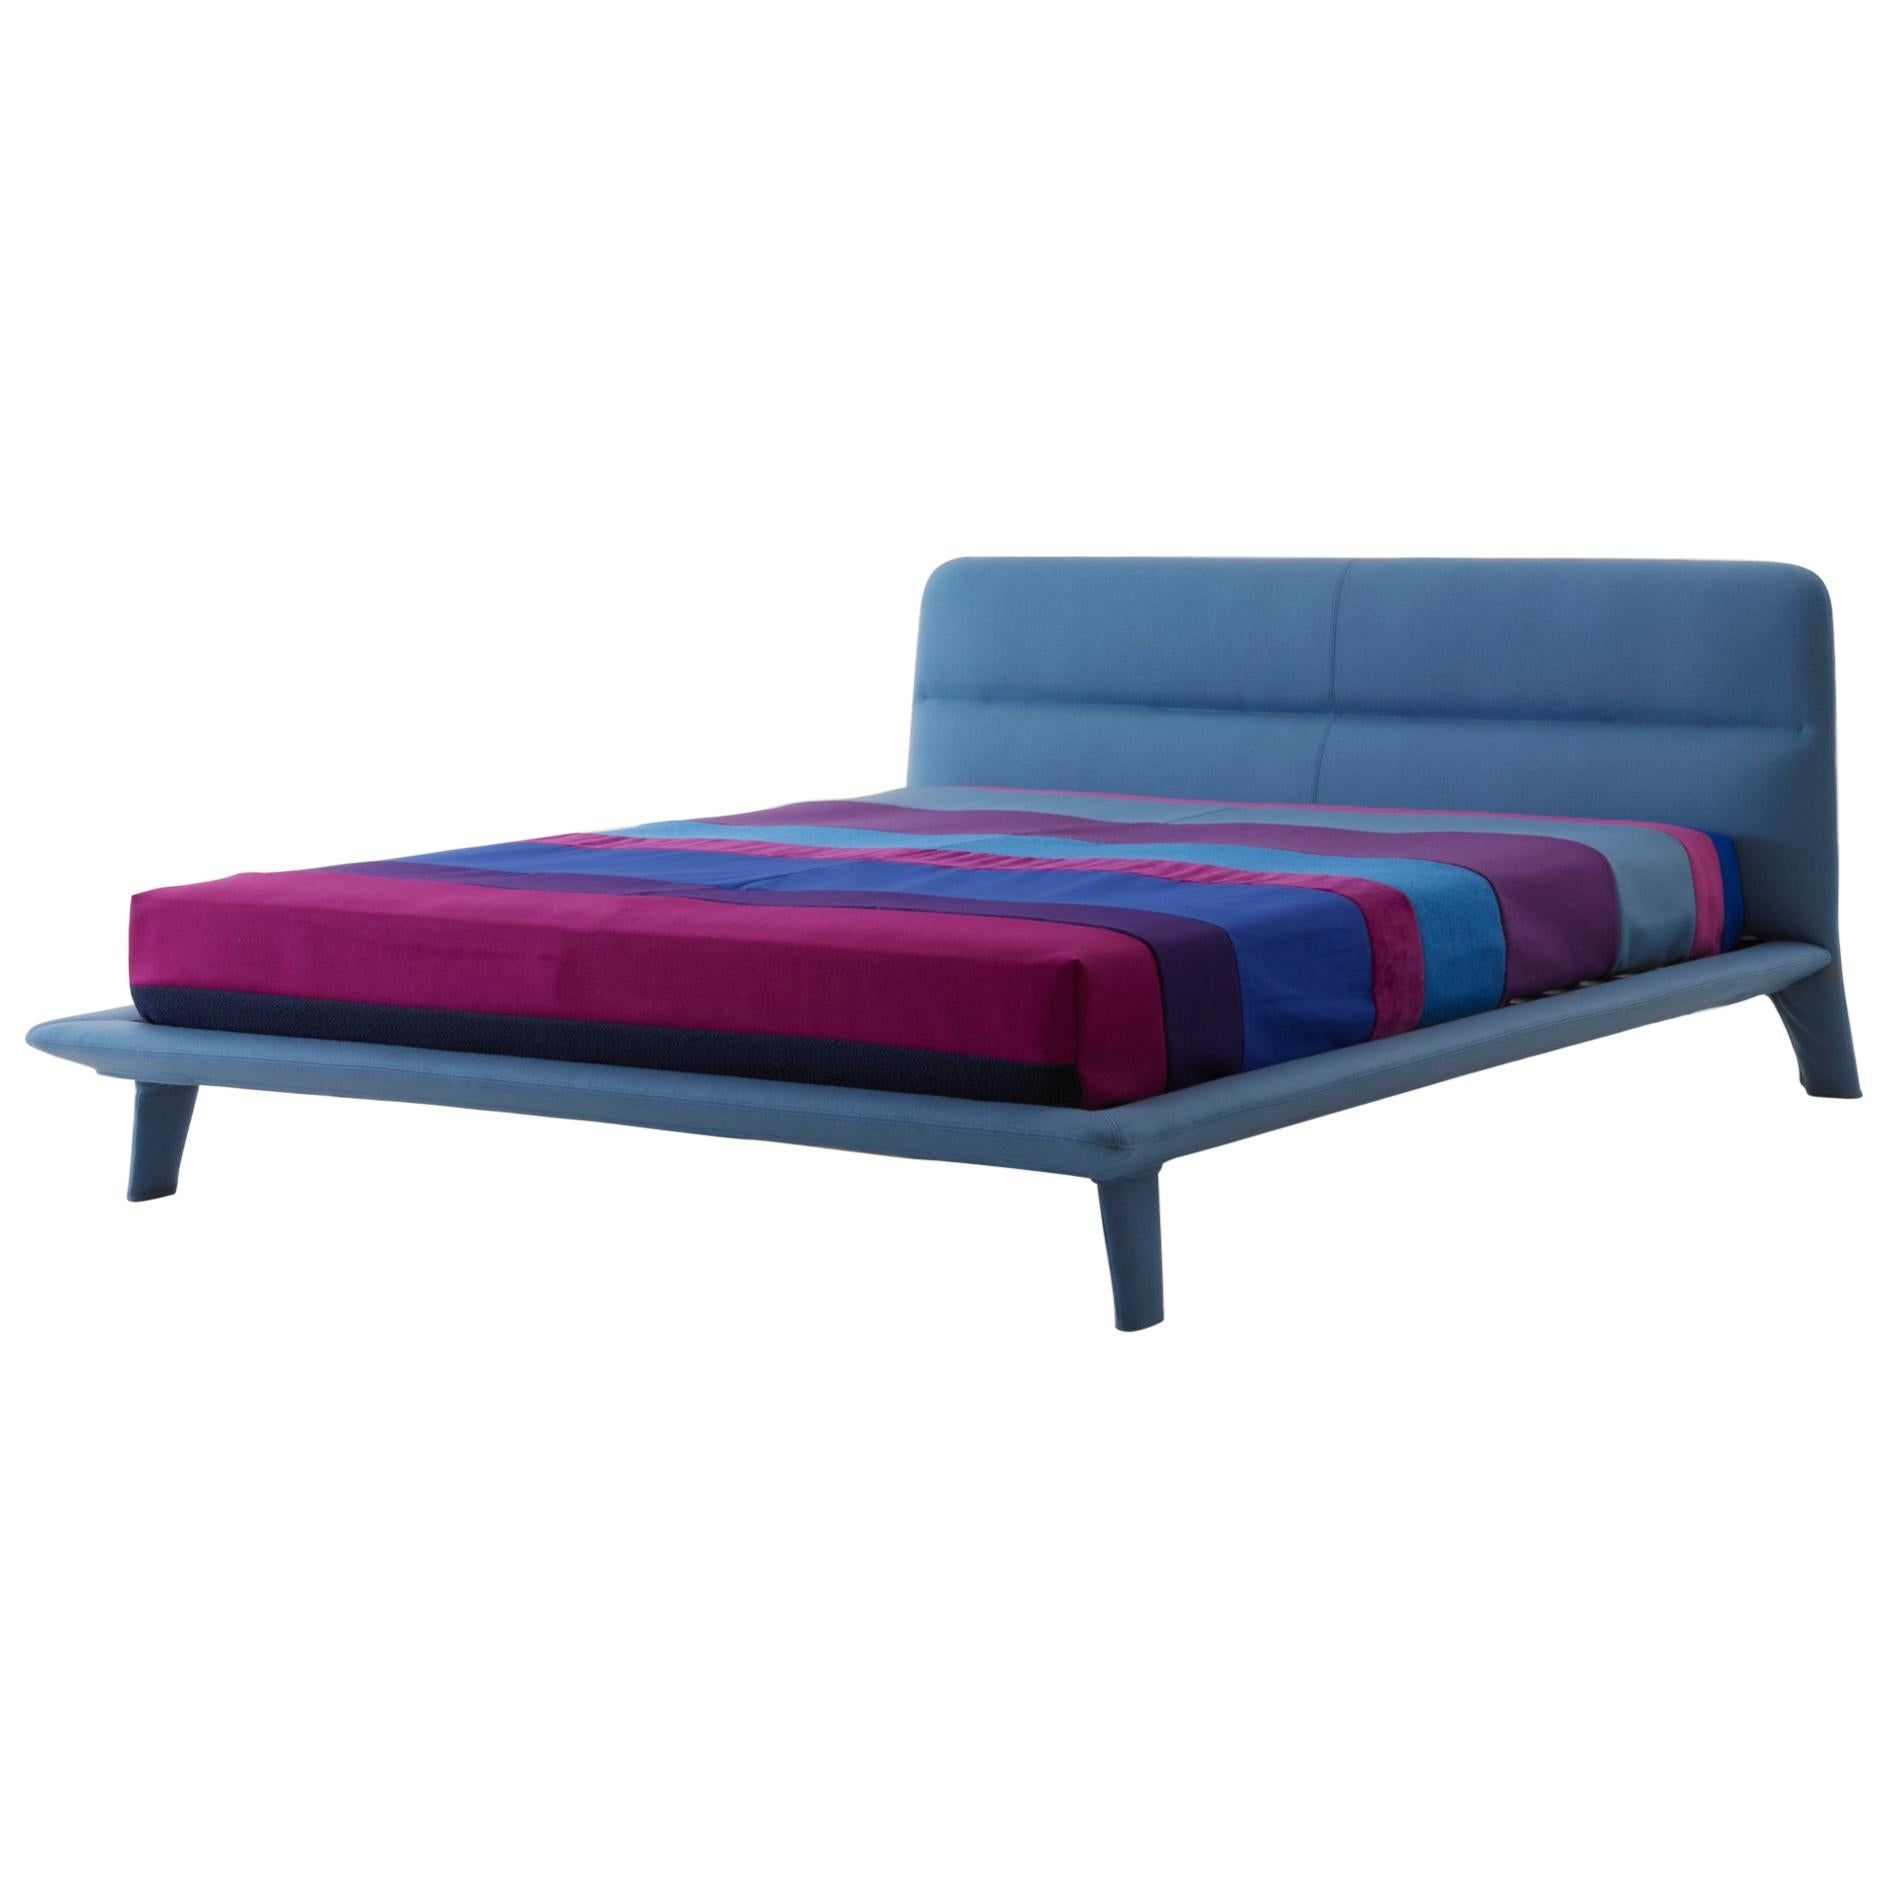 Nube Italia Amos Bed in Blue Upholstery by Mario Ferrarini